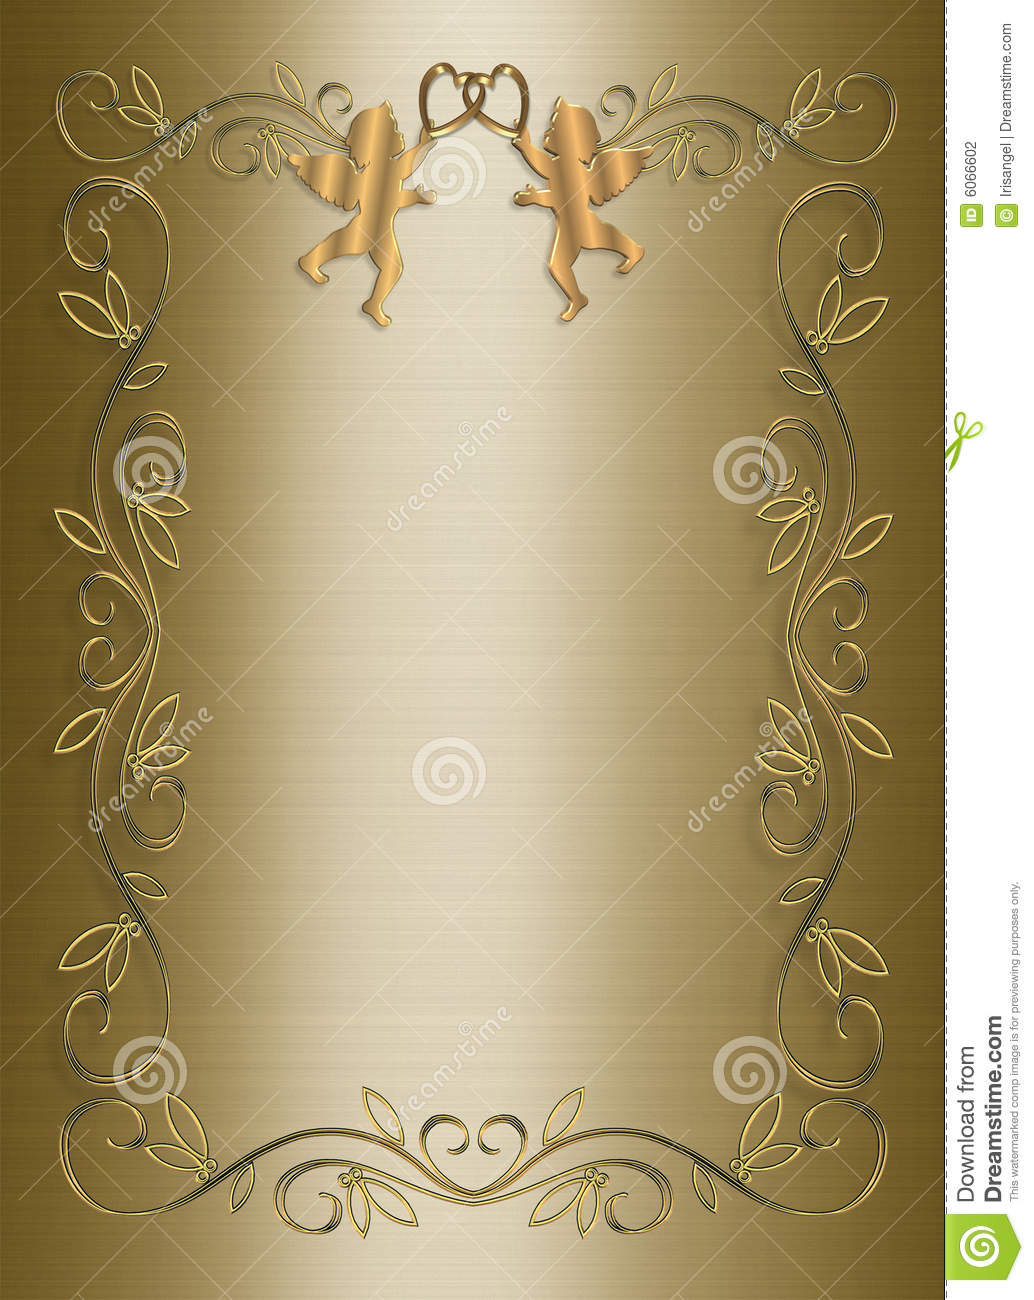 wedding invitation template gold satin stock illustration